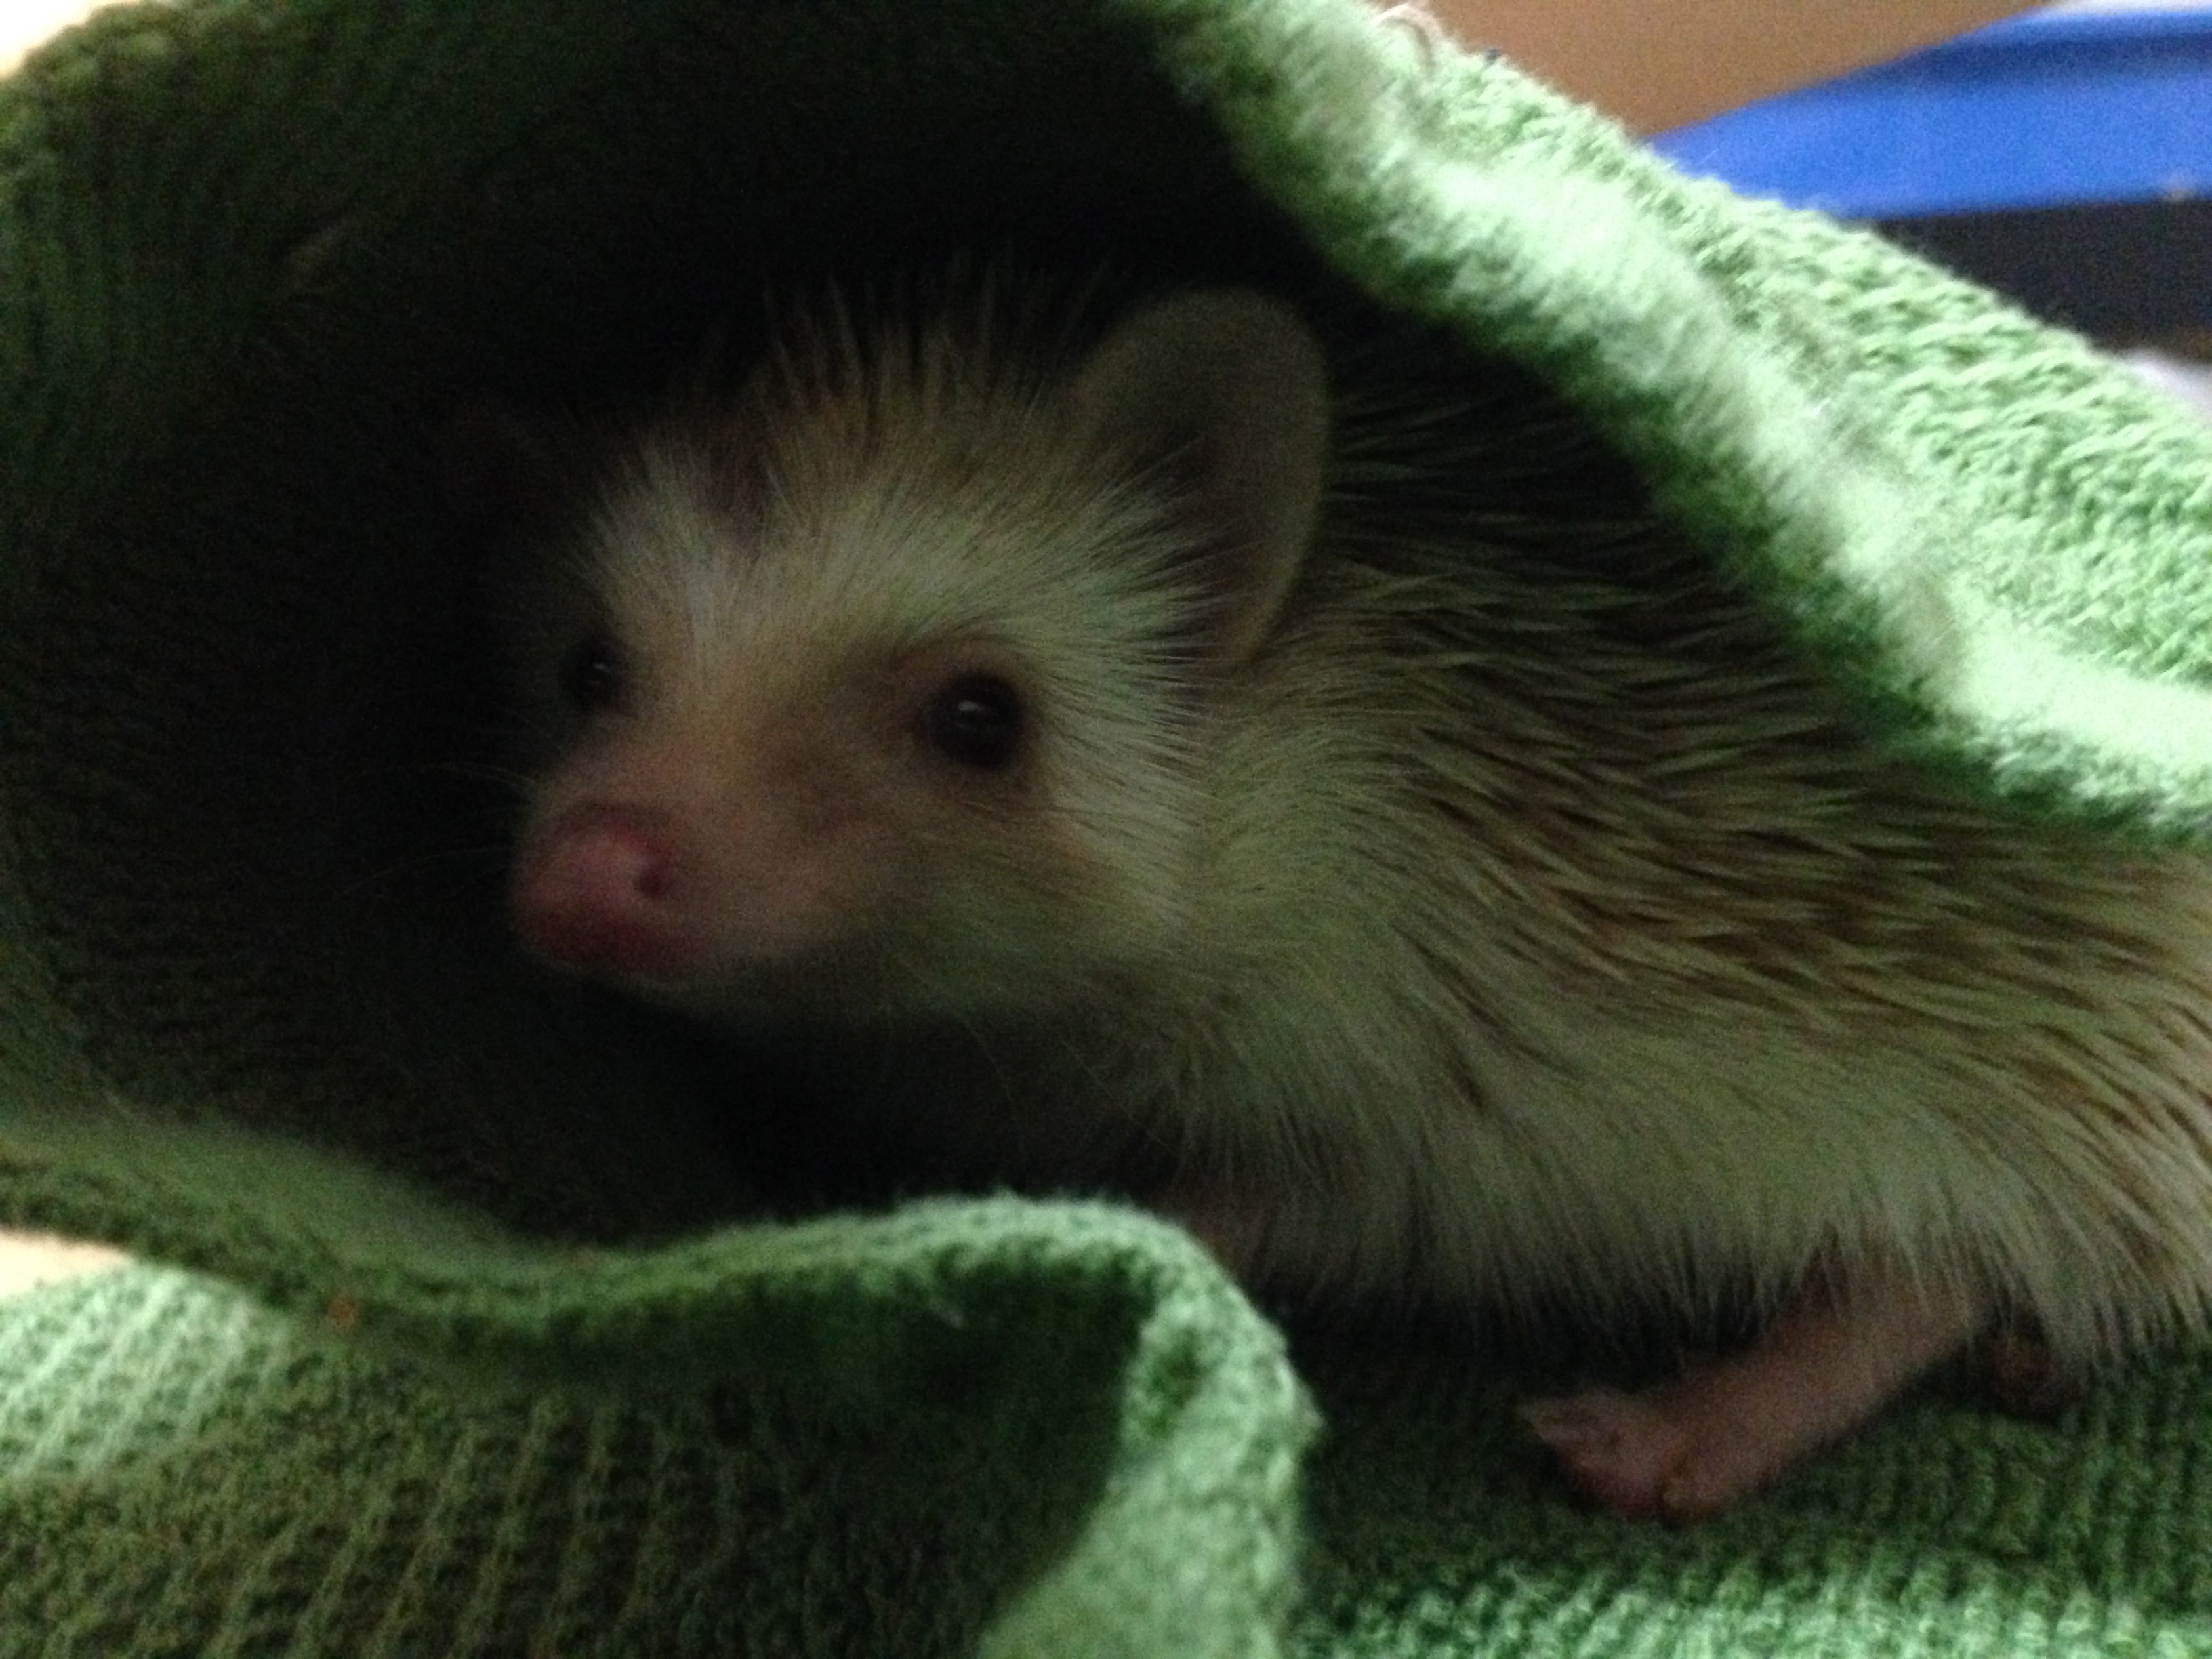 It's hard not to love a hedgehog